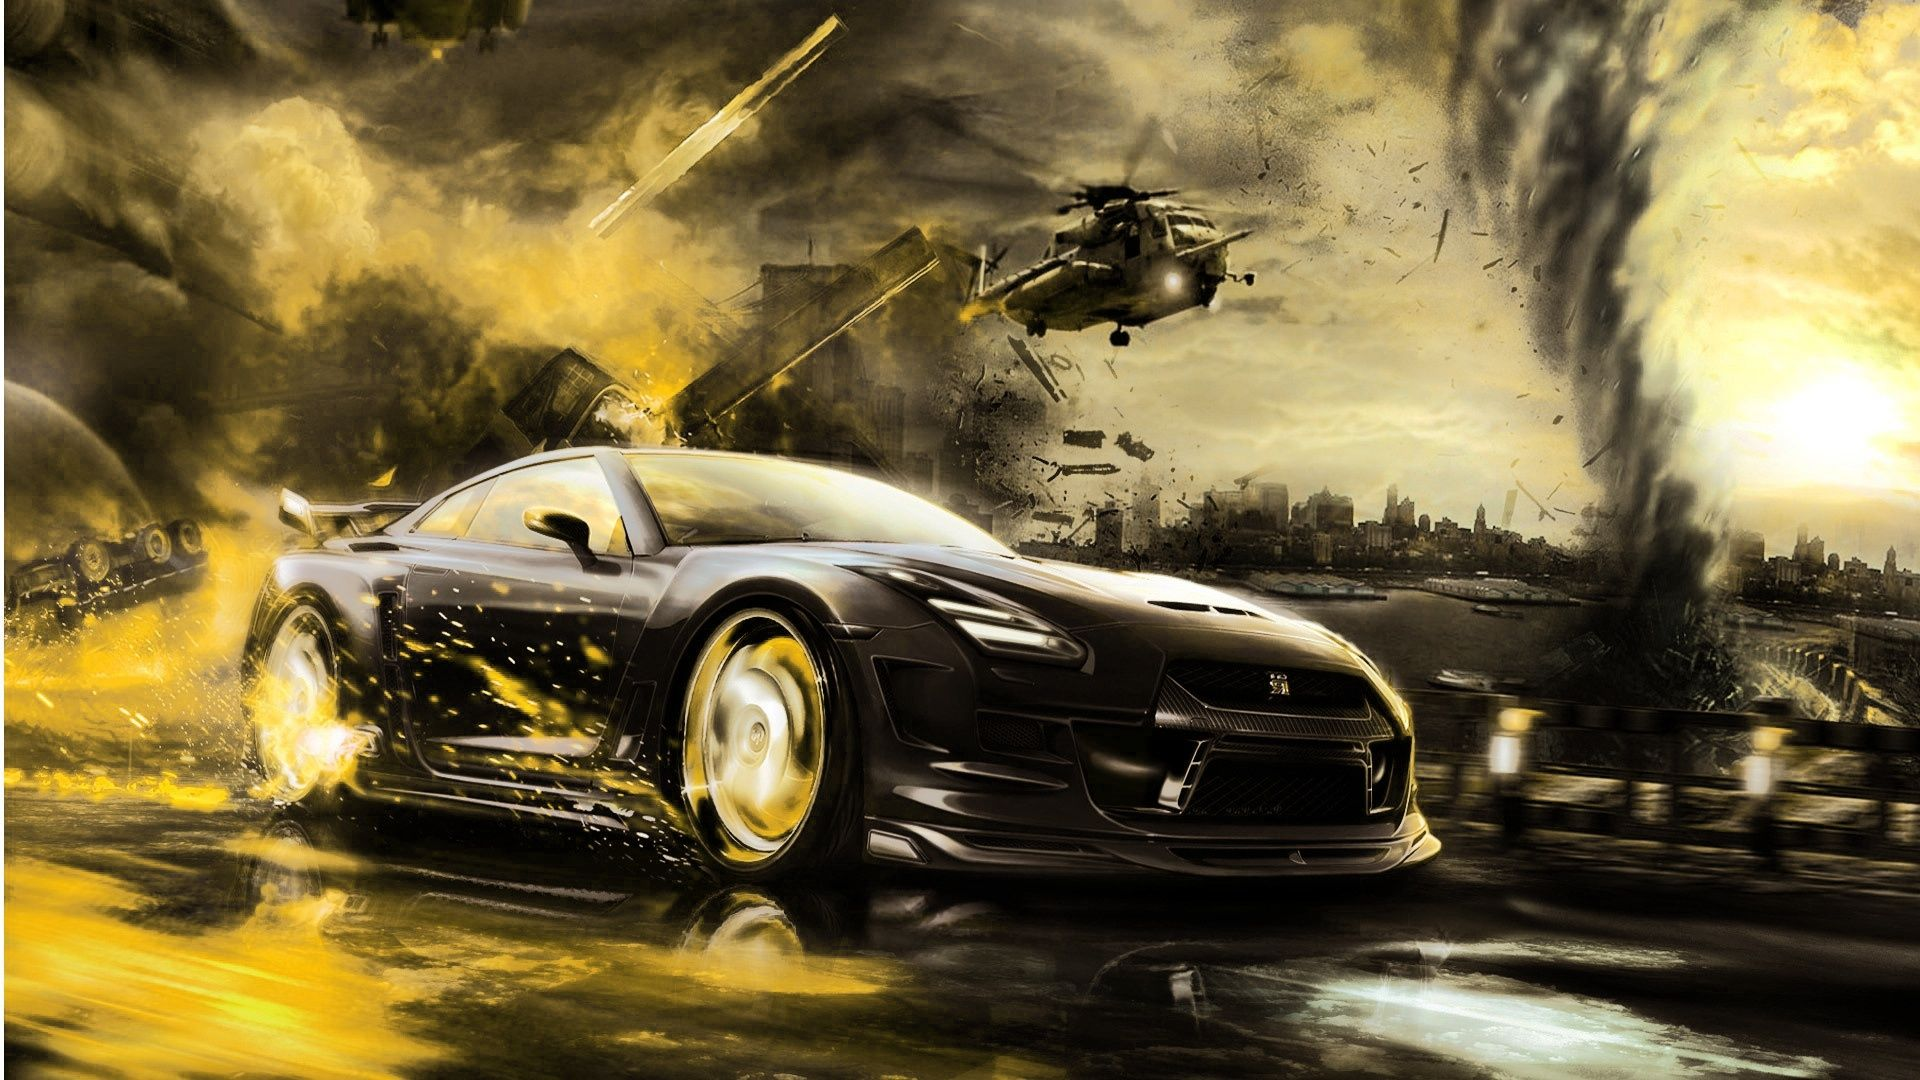 Awesome Halicopter Car Hd Wallpapers 1080p With Images Car